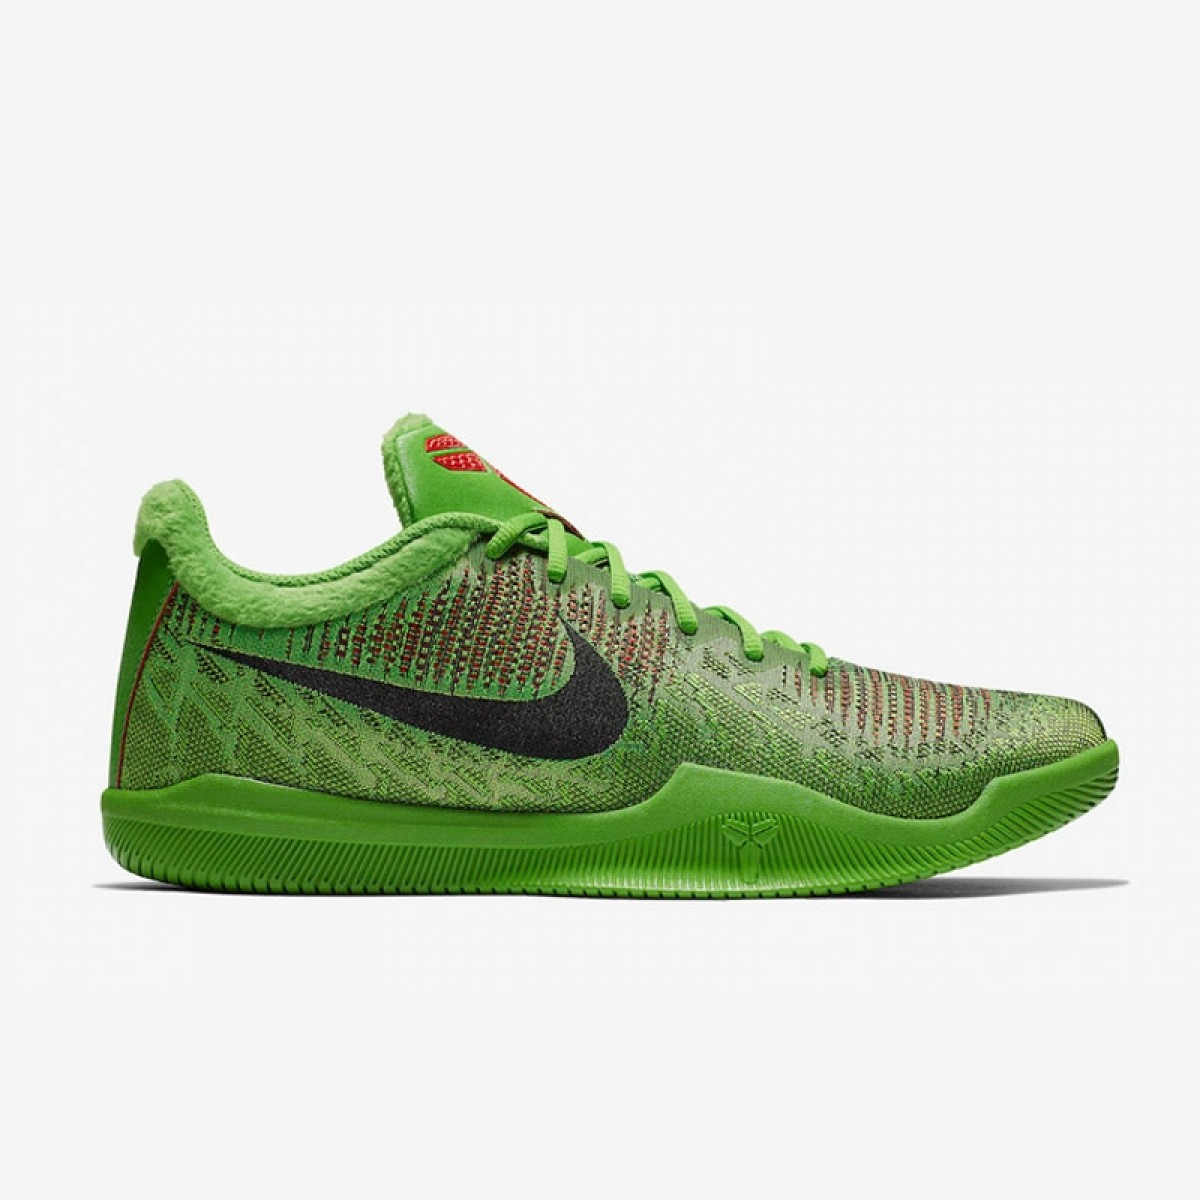 huge discount 8cedf 917ae Buy Nike Mamba Rage  Grinch  Basketball shoes   sneakers